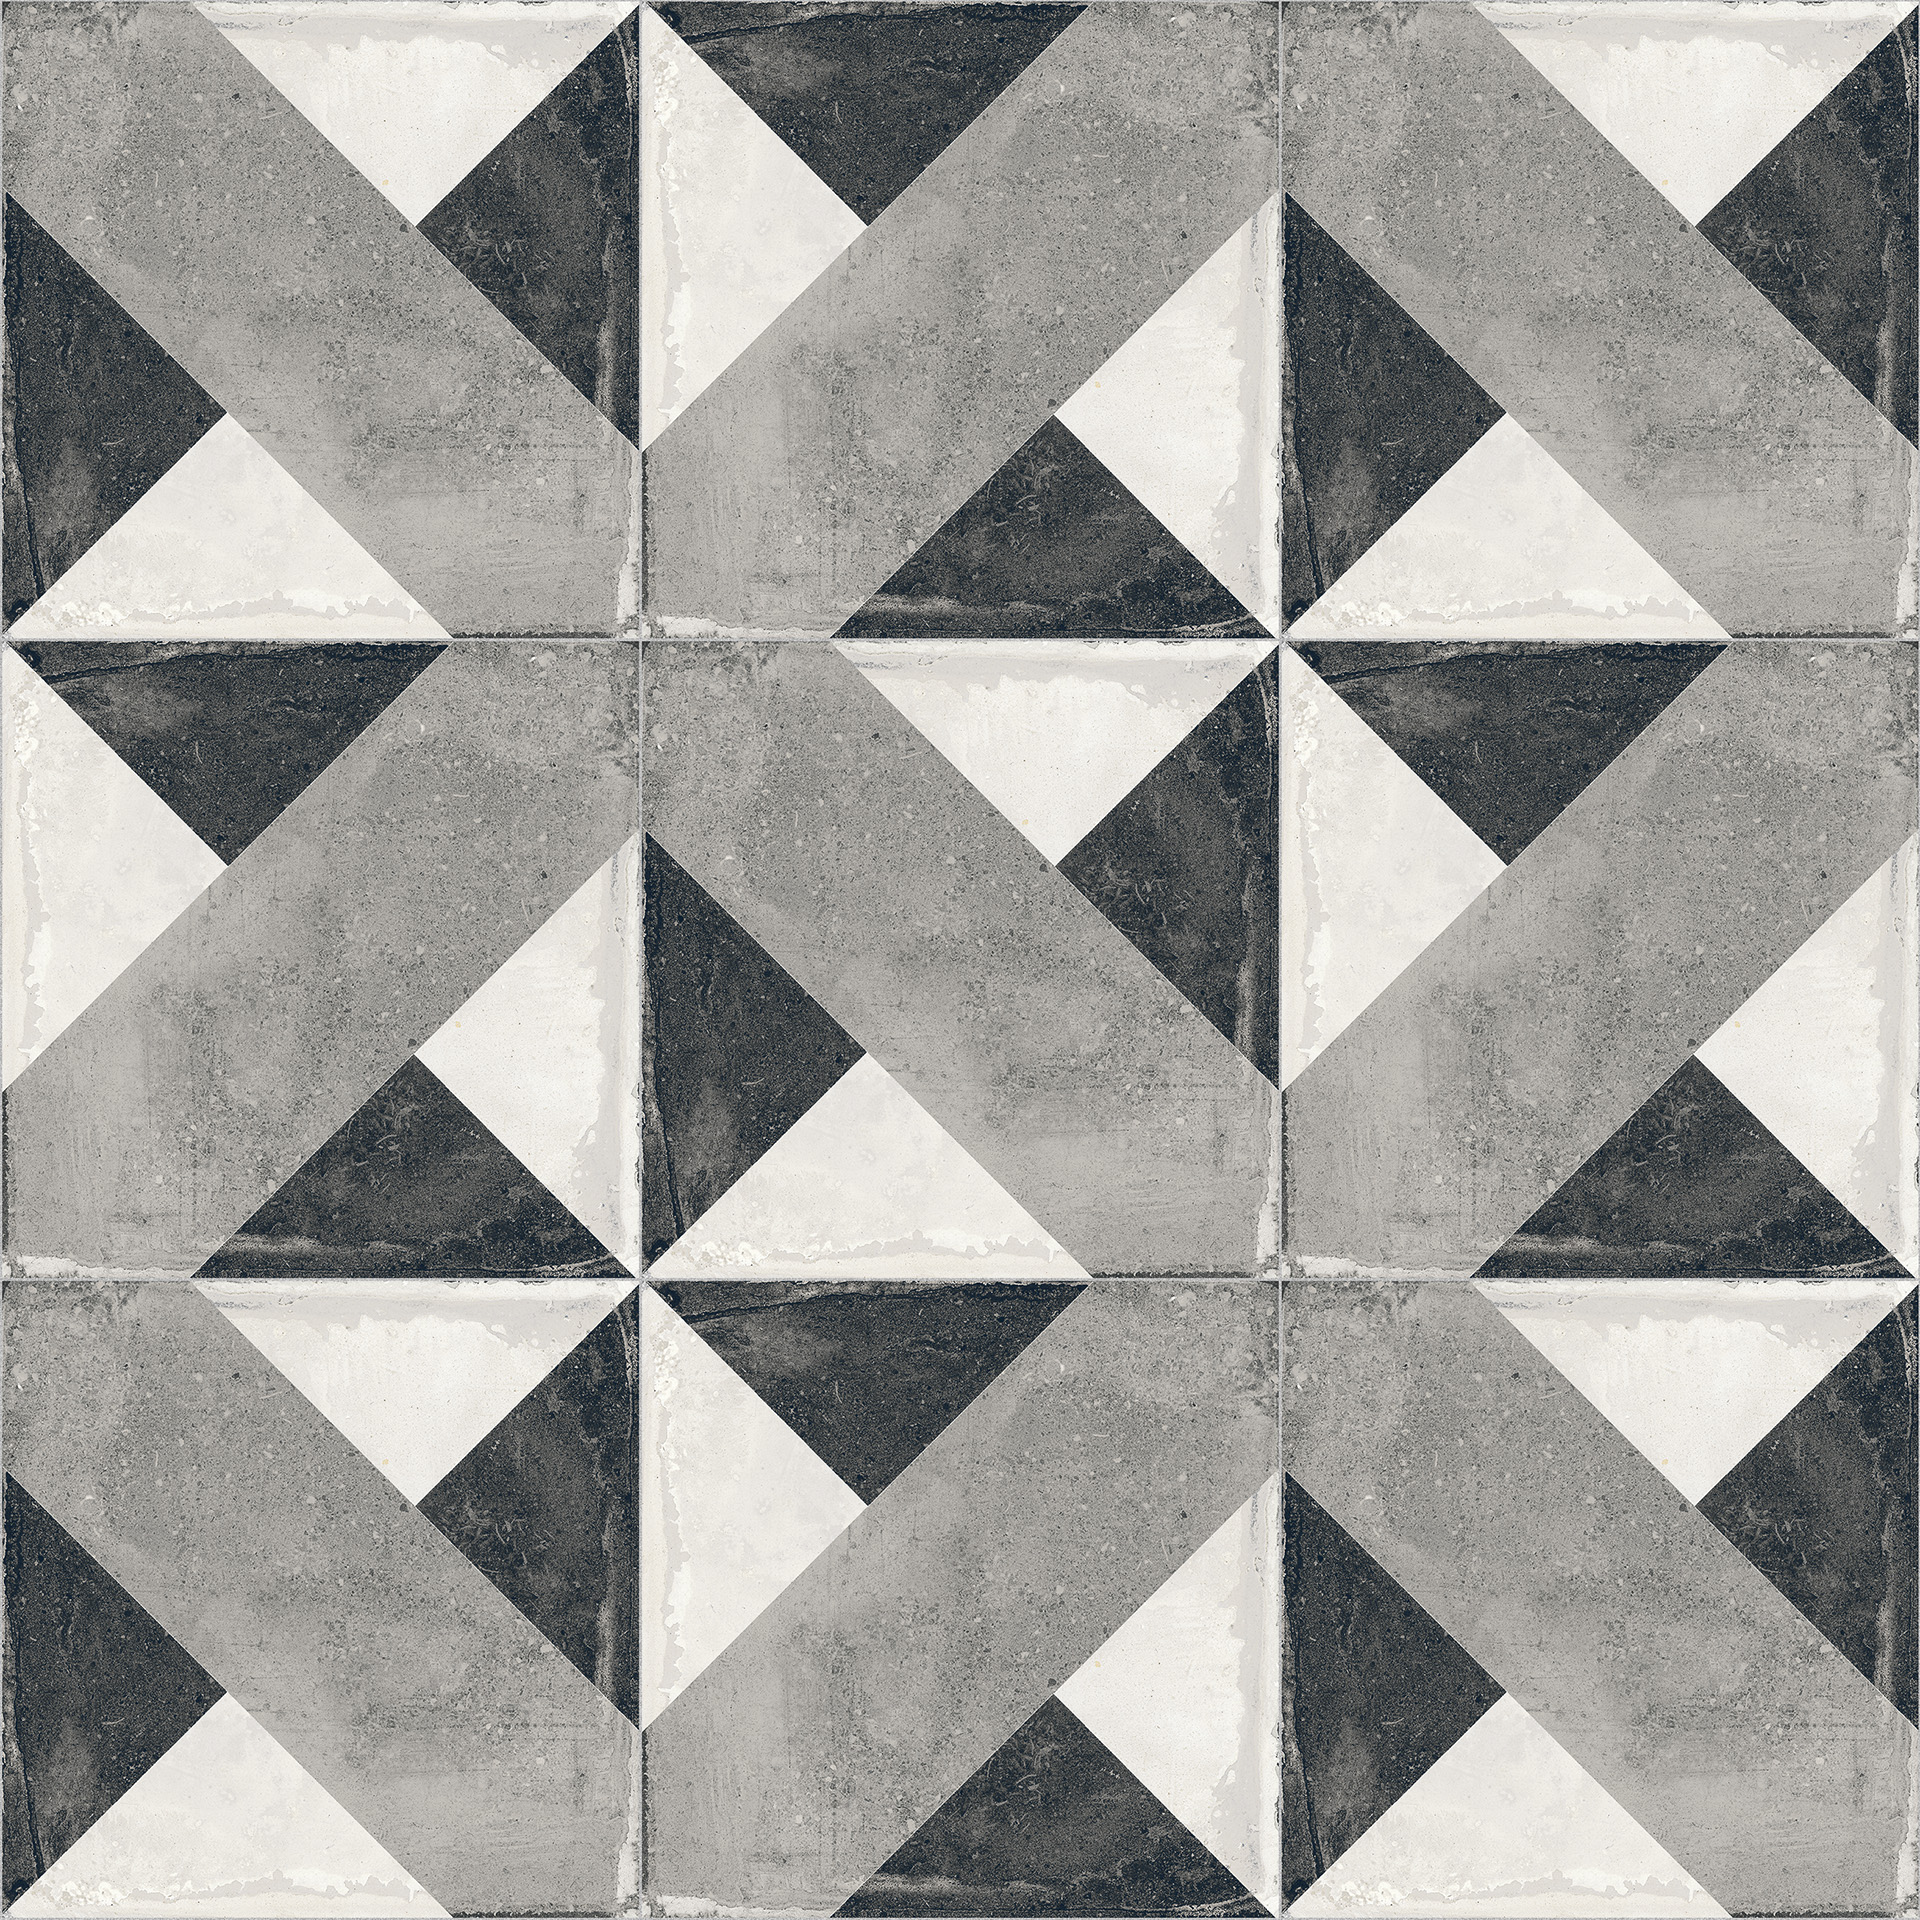 Heritage Tangram Cold 20,0x20,0 - R10